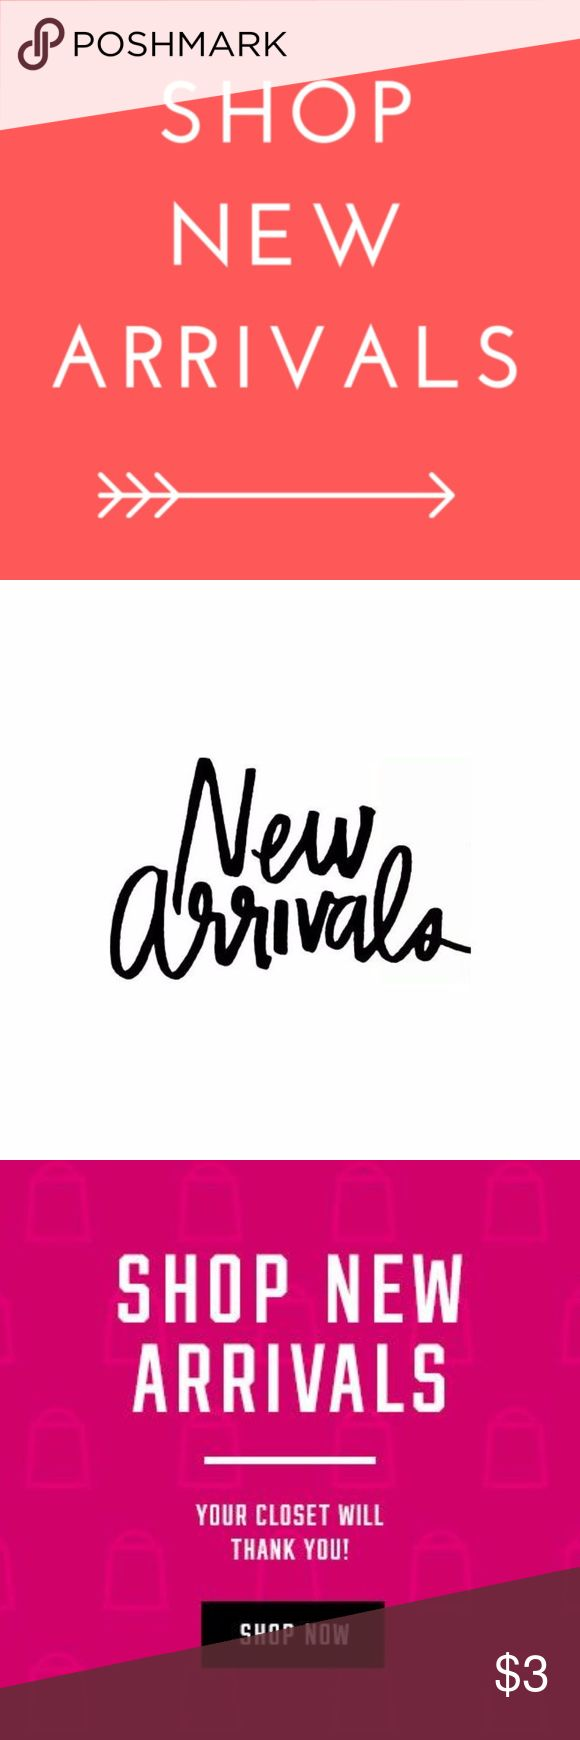 NEW TODAY 11/30 Shop newly listed items. New 'must haves' added daily!!   Searching for a specific size or item? Comment below what you are looking for, I might just have it.  My closet is organized as follows  • New Arrivals • Women's Plus   5X - XL • Missy/Women's  L - XXS • Special Occasion Dresses • Bridal • Maternity • Bras/Lingerie • Swimwear • Accessories • Shoes • Handbags/Bags/Wallets • Men's • Kid's • SOLD  @cjrose25 Various Other